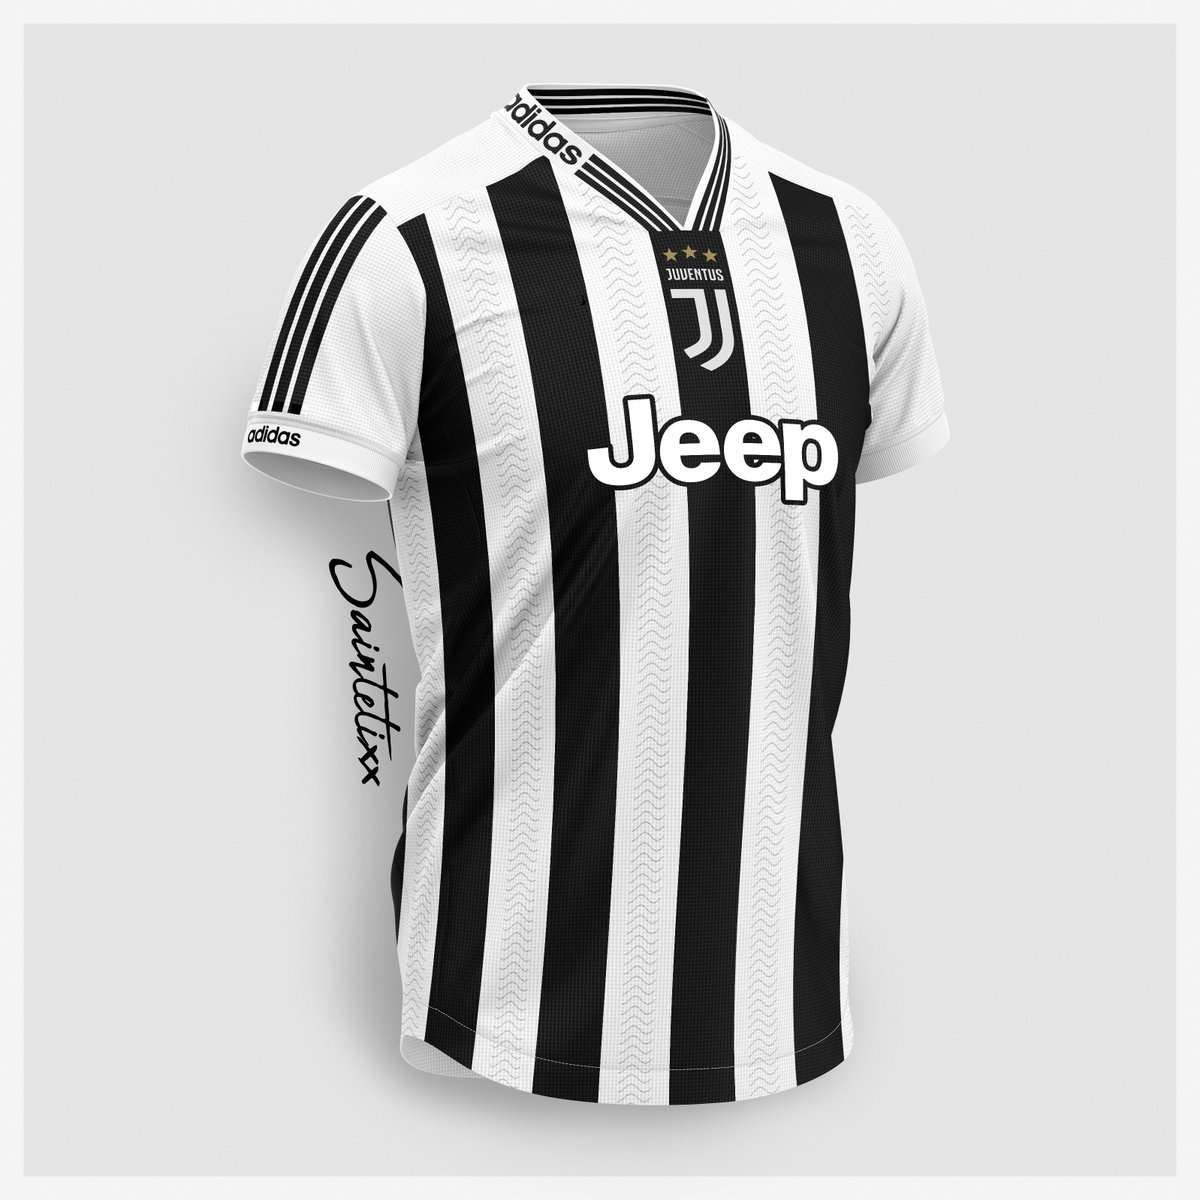 67d1445b50 Extraordinary Adidas Juventus Home, Away & Third Concept Kits By ...